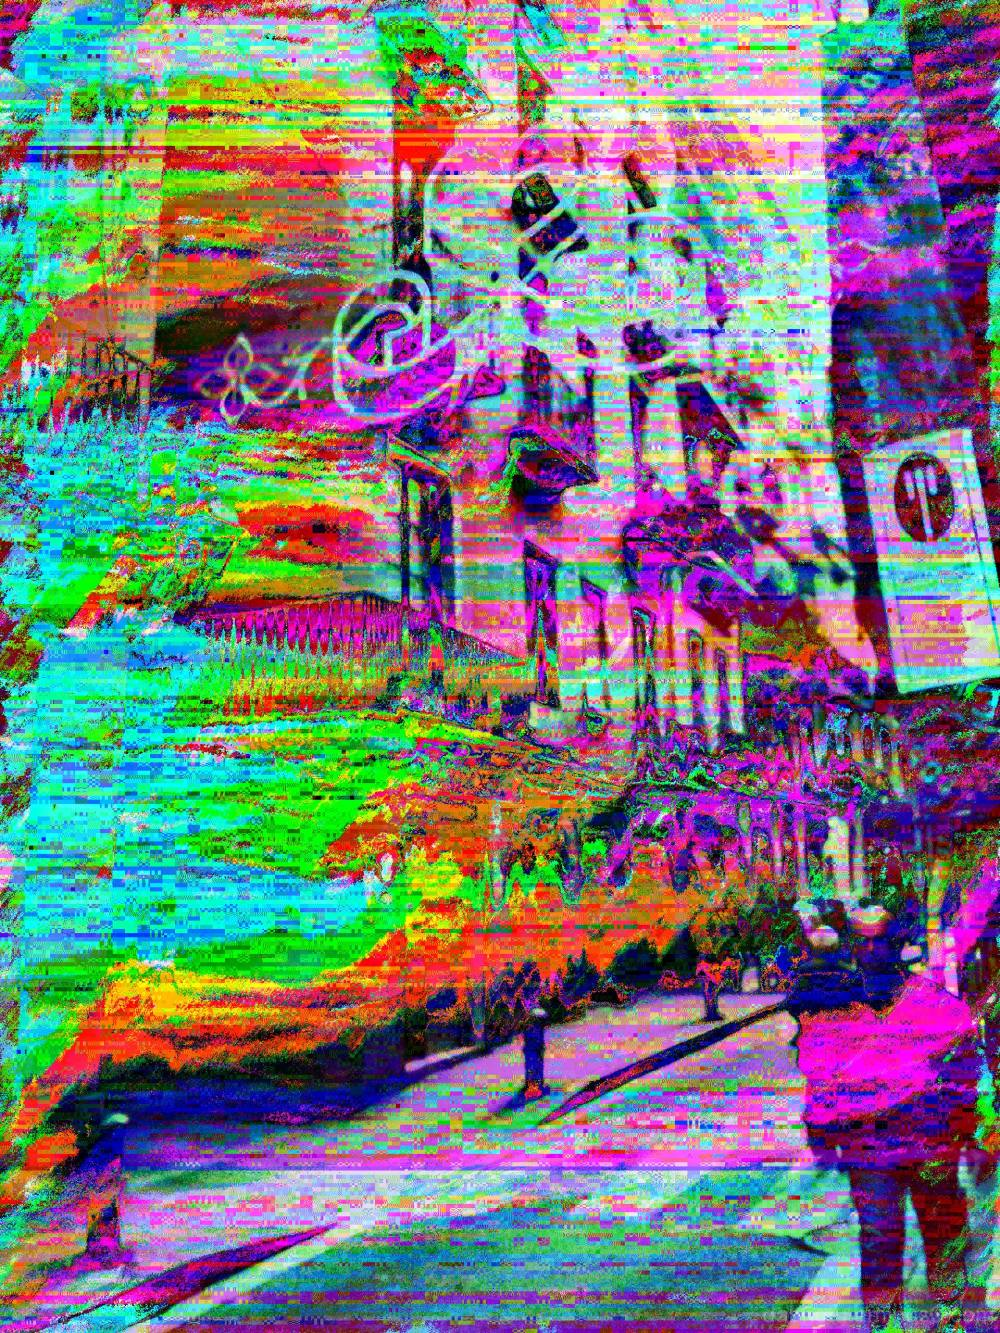 Databent/glitched/pixel sorted street pic!